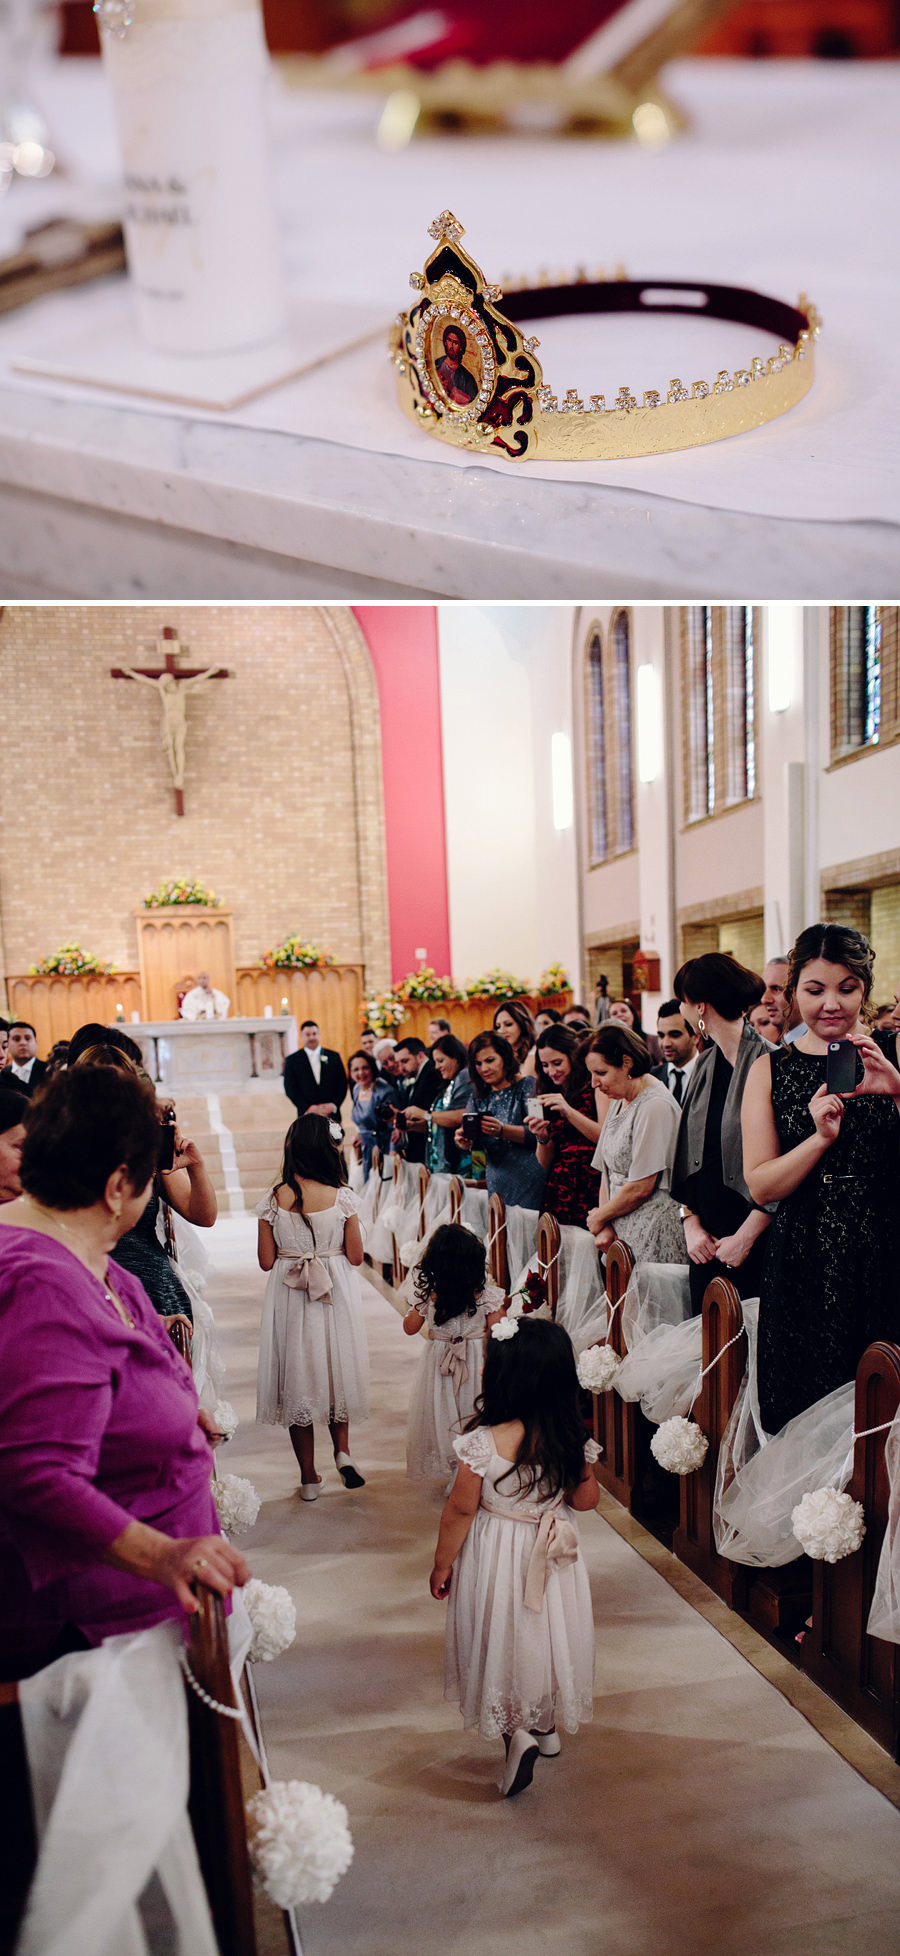 Catholic Wedding Photographers: Walking down the aisle